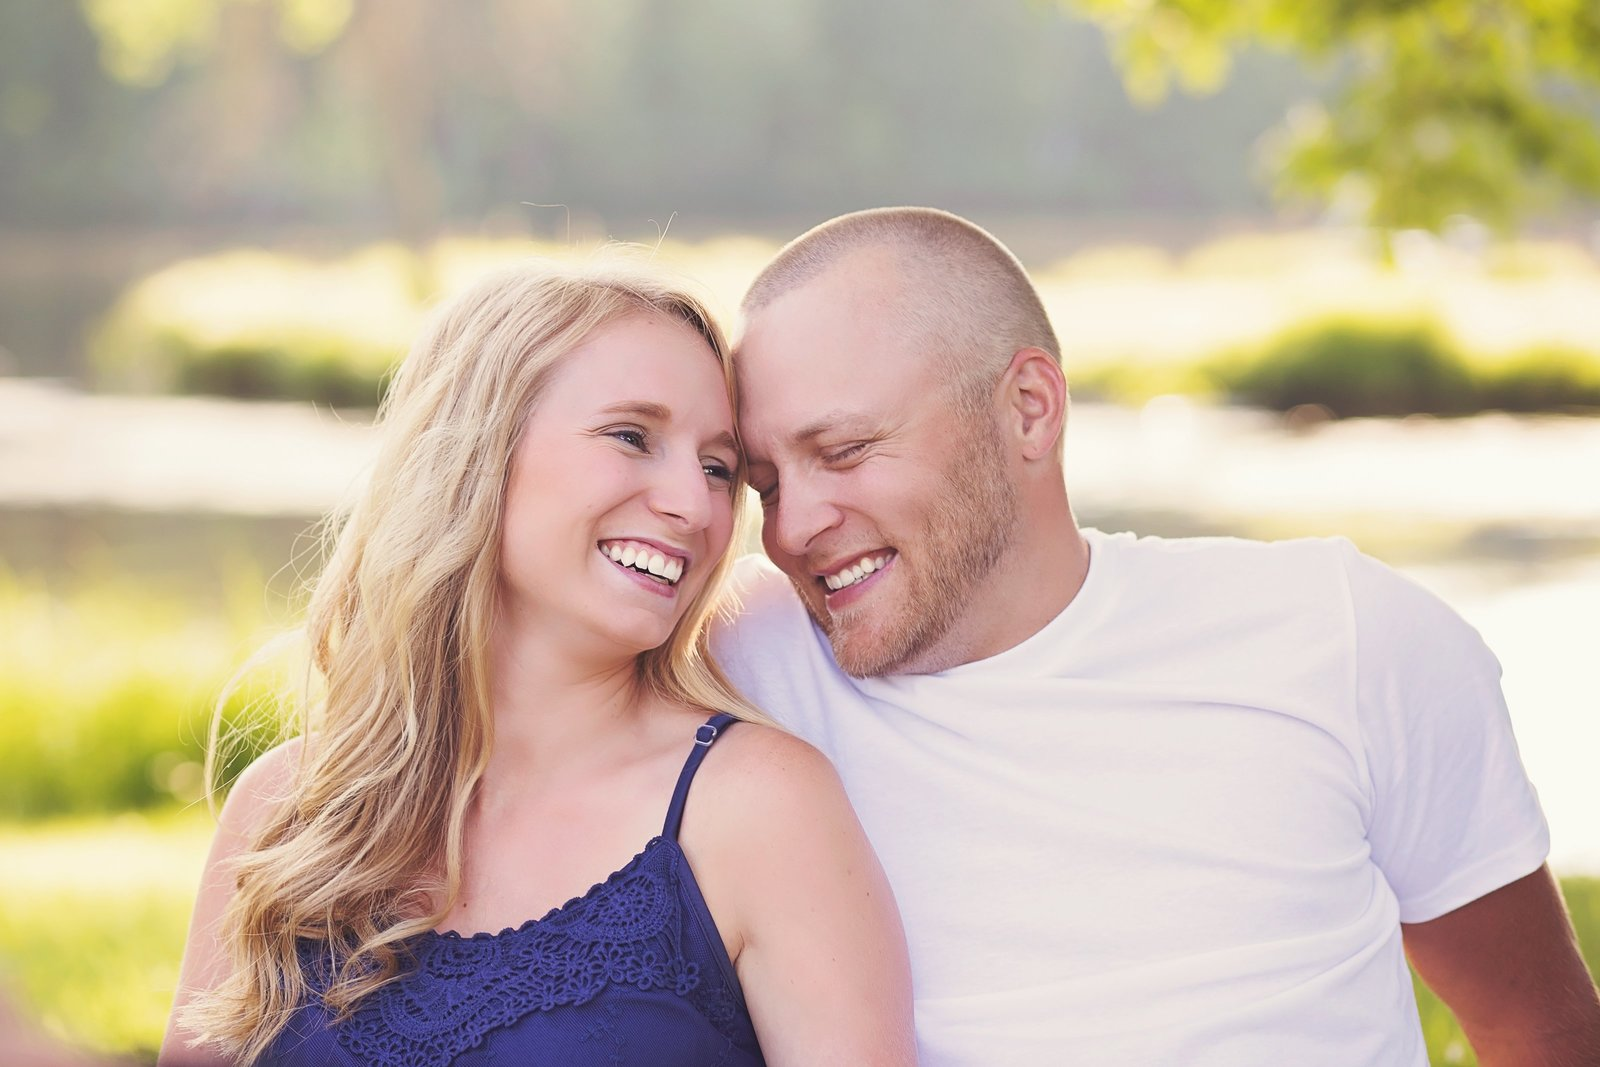 Engagement and Wedding Photographer in Iron Mountain, MI @ http://www.photosbyciera.com